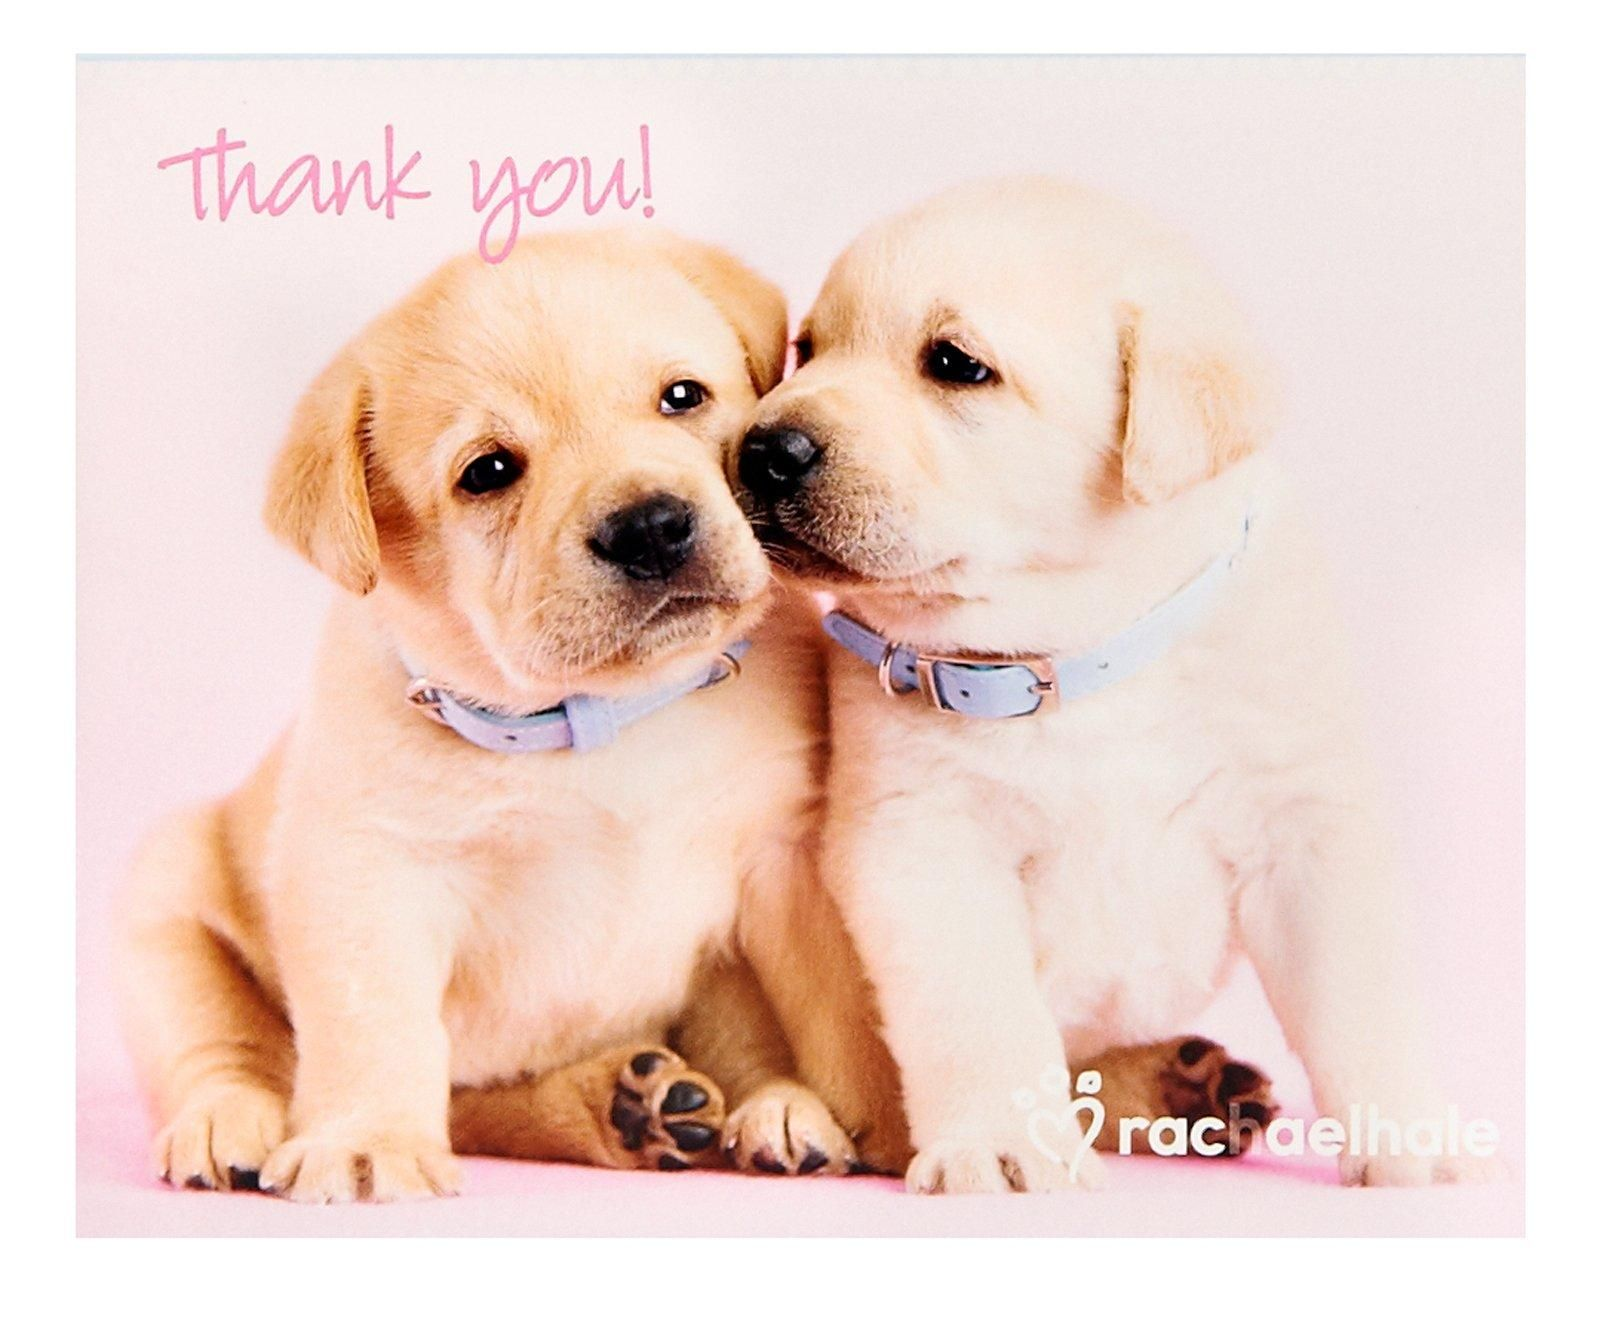 Rachaelhale Glamour Dogs Thank You Notes 8 Glamour Dogs Puppies Lab Puppies